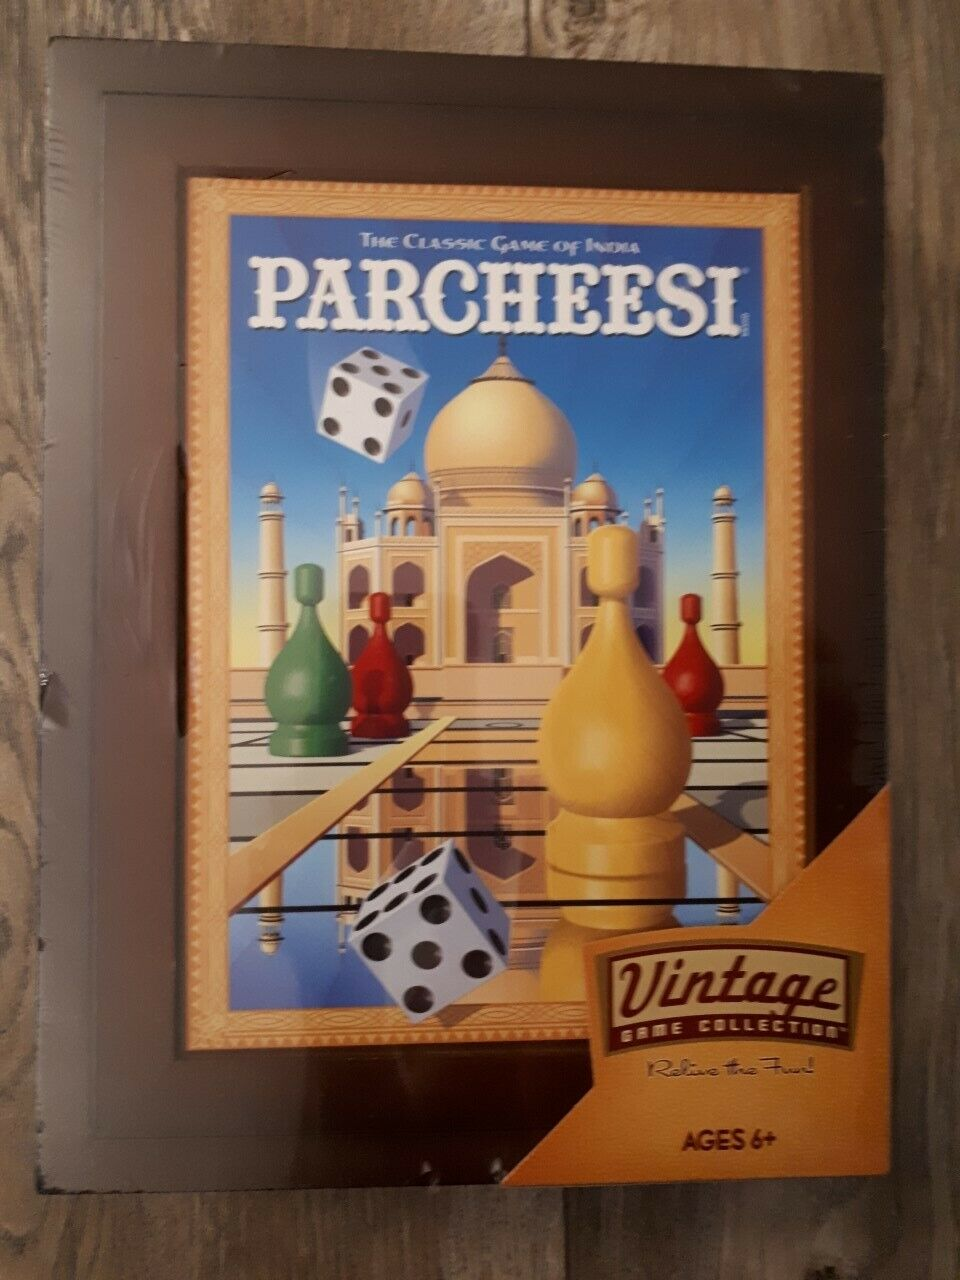 New PARCHEESI Board Game, Vintage collection with wooden case ,factory sealed